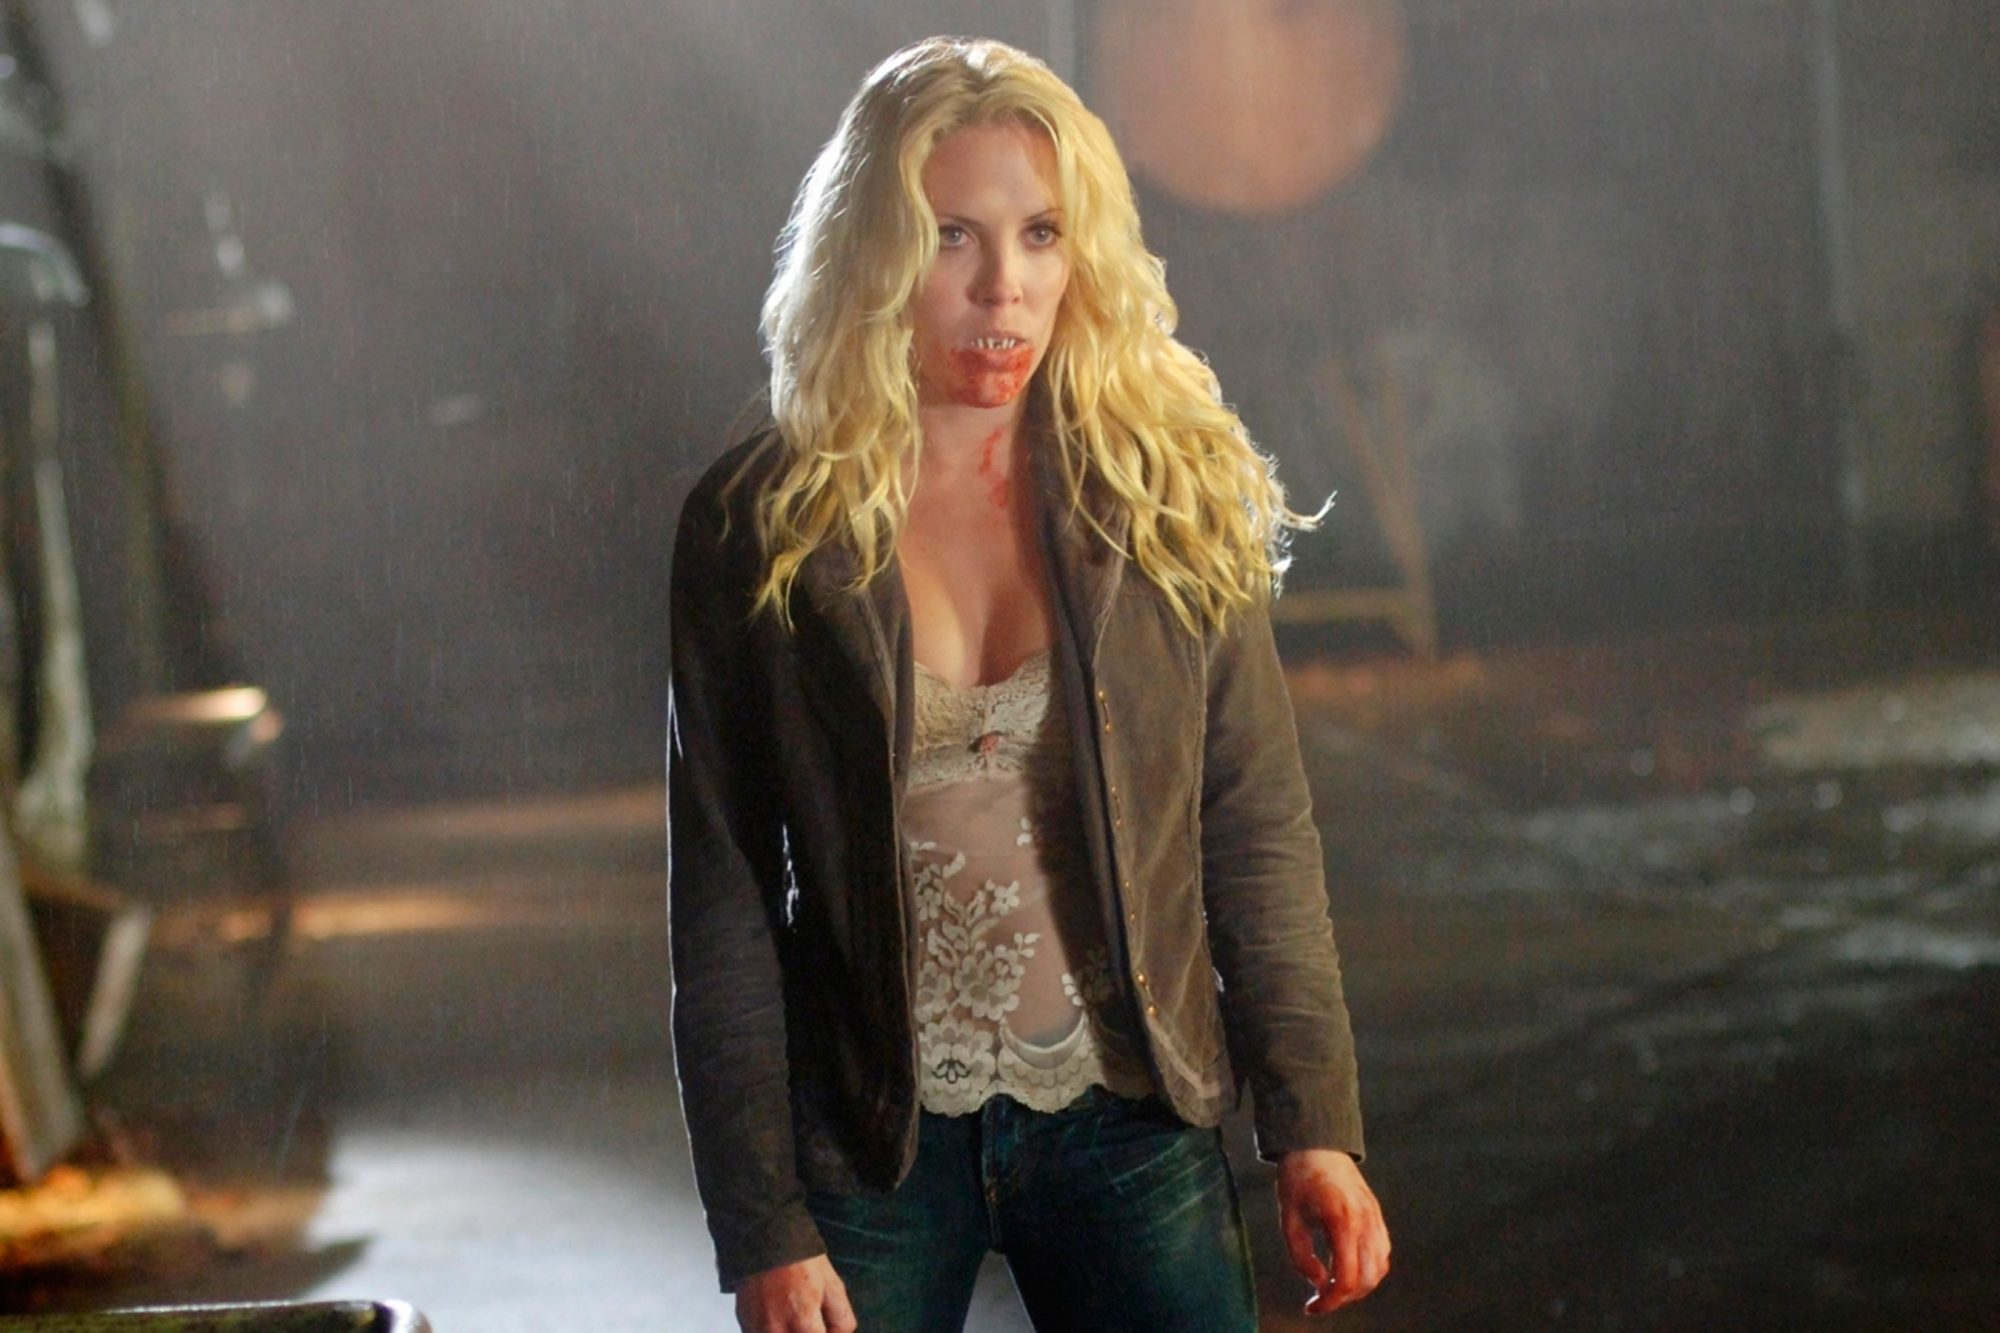 10. Mercedes McNab as Lucy